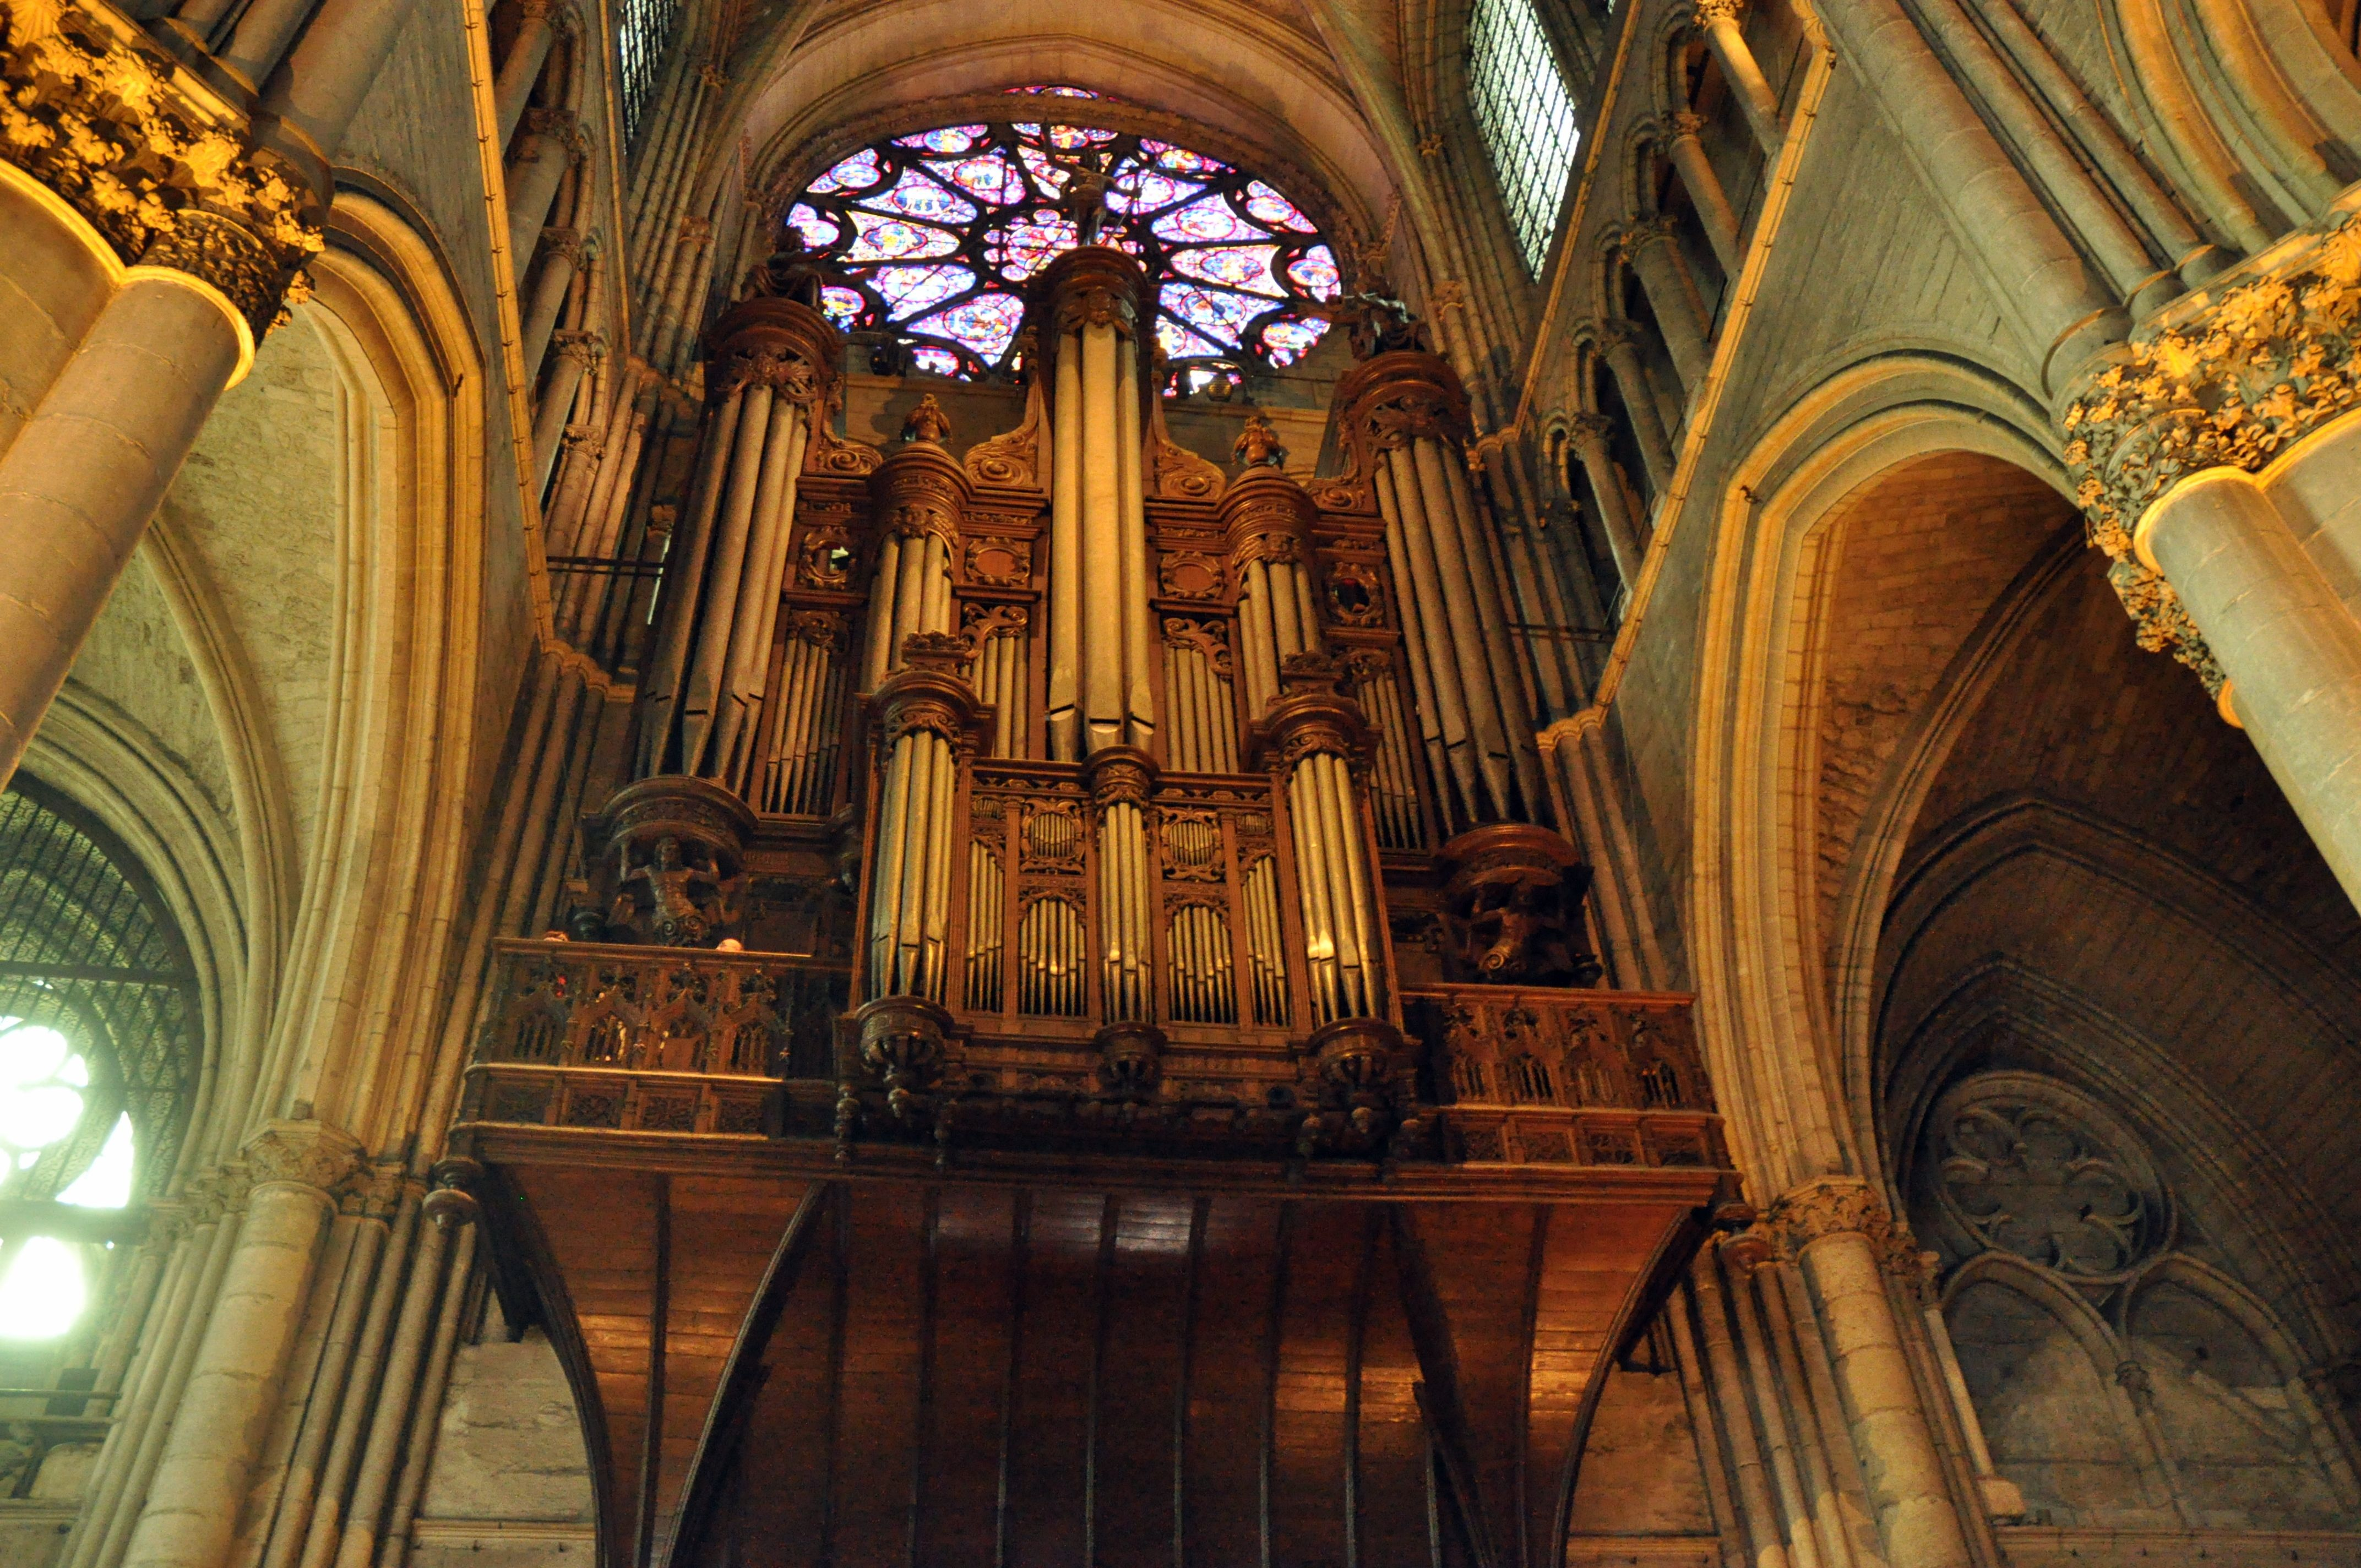 ORGUE DE LA CATHÉDRALE DE REIMS